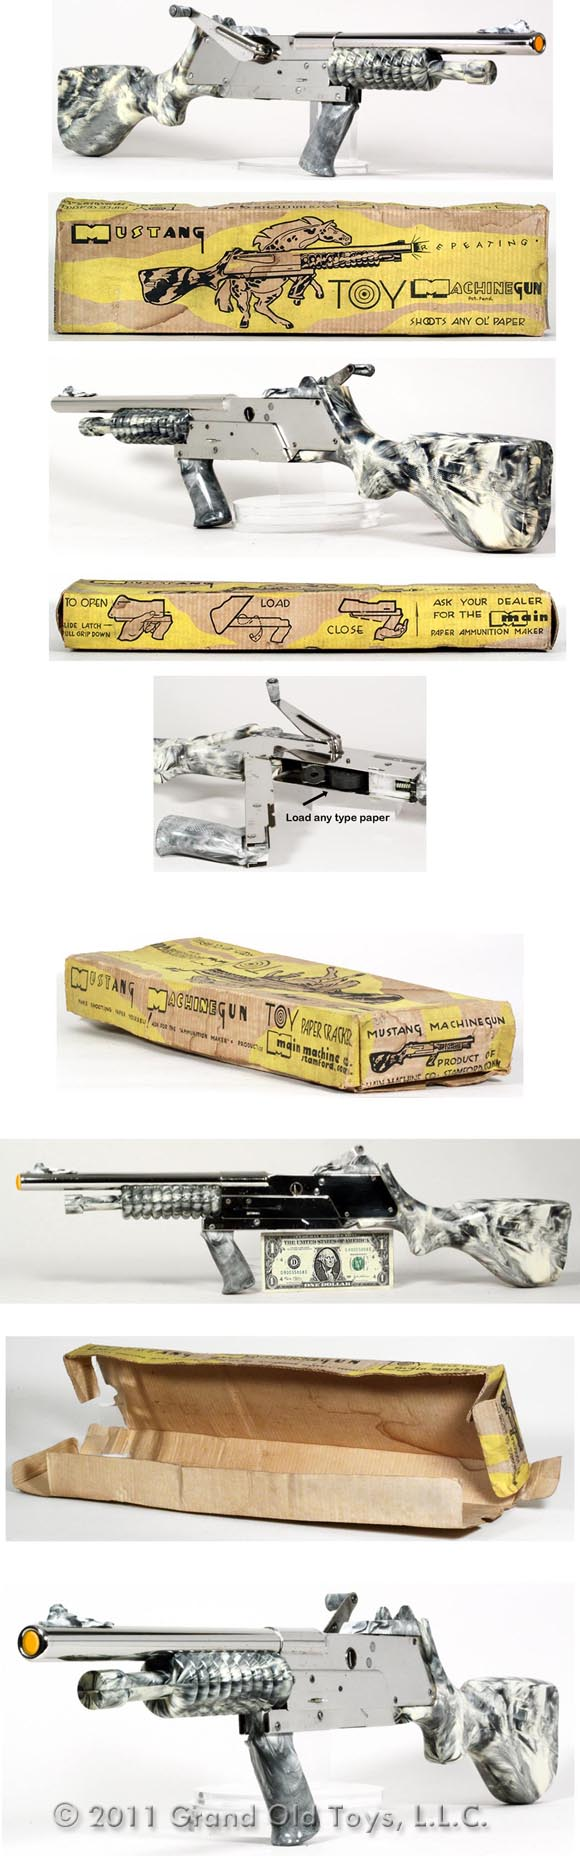 c.1948 Main Machine, Mustang Machine Gun In Original Box